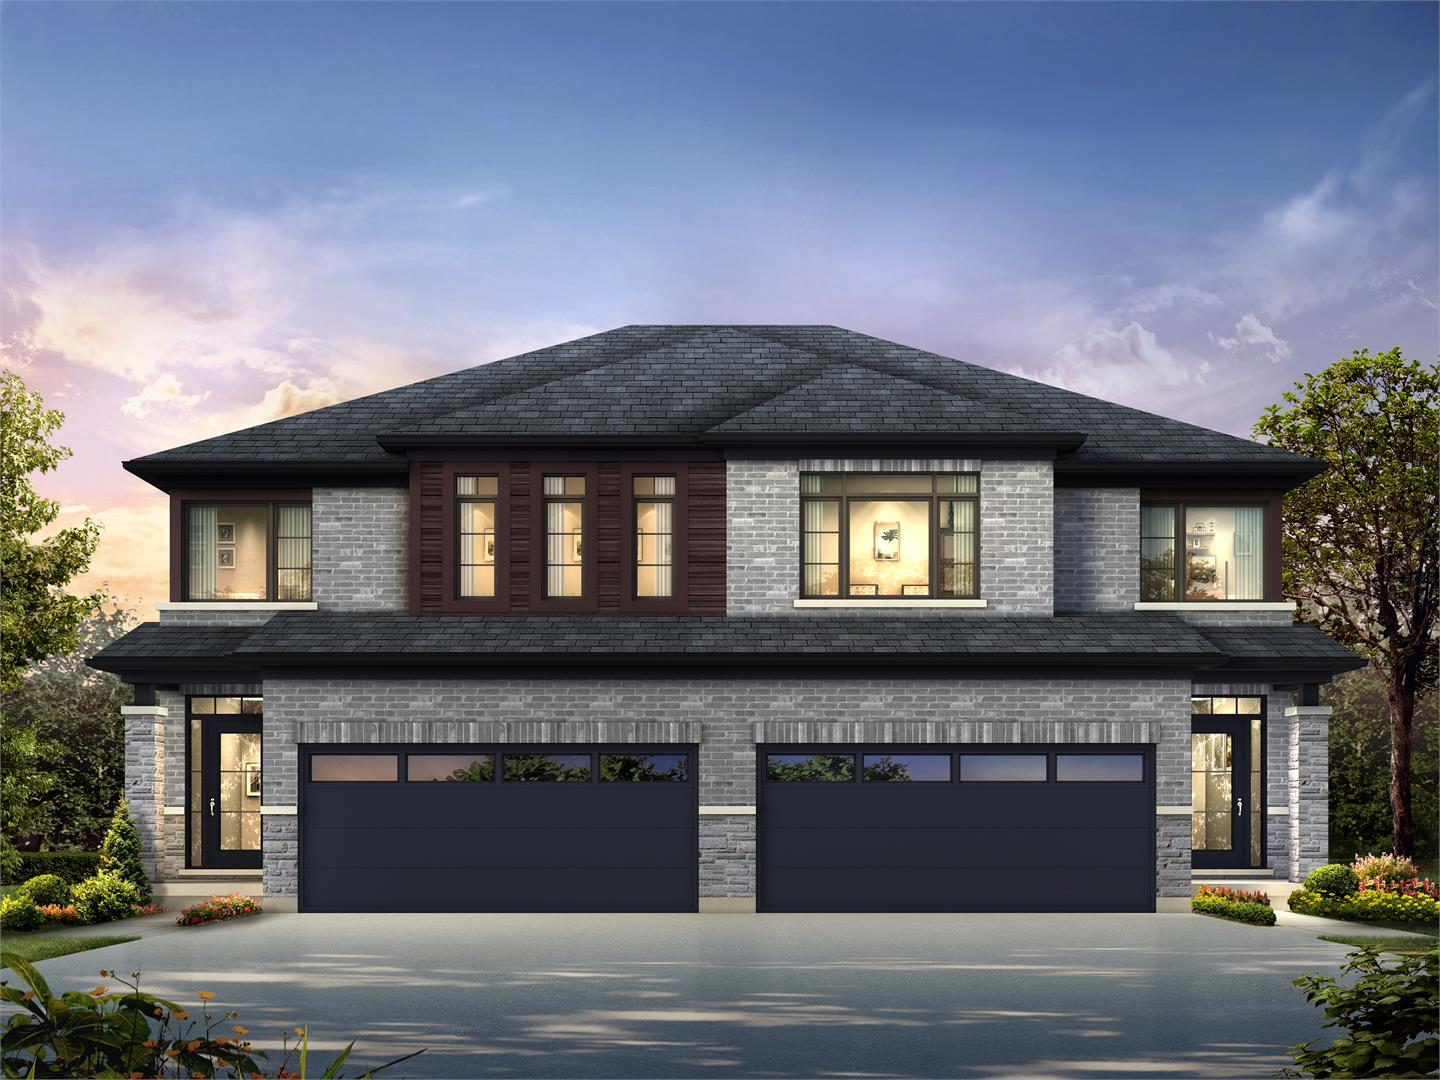 Losani model homes for sale